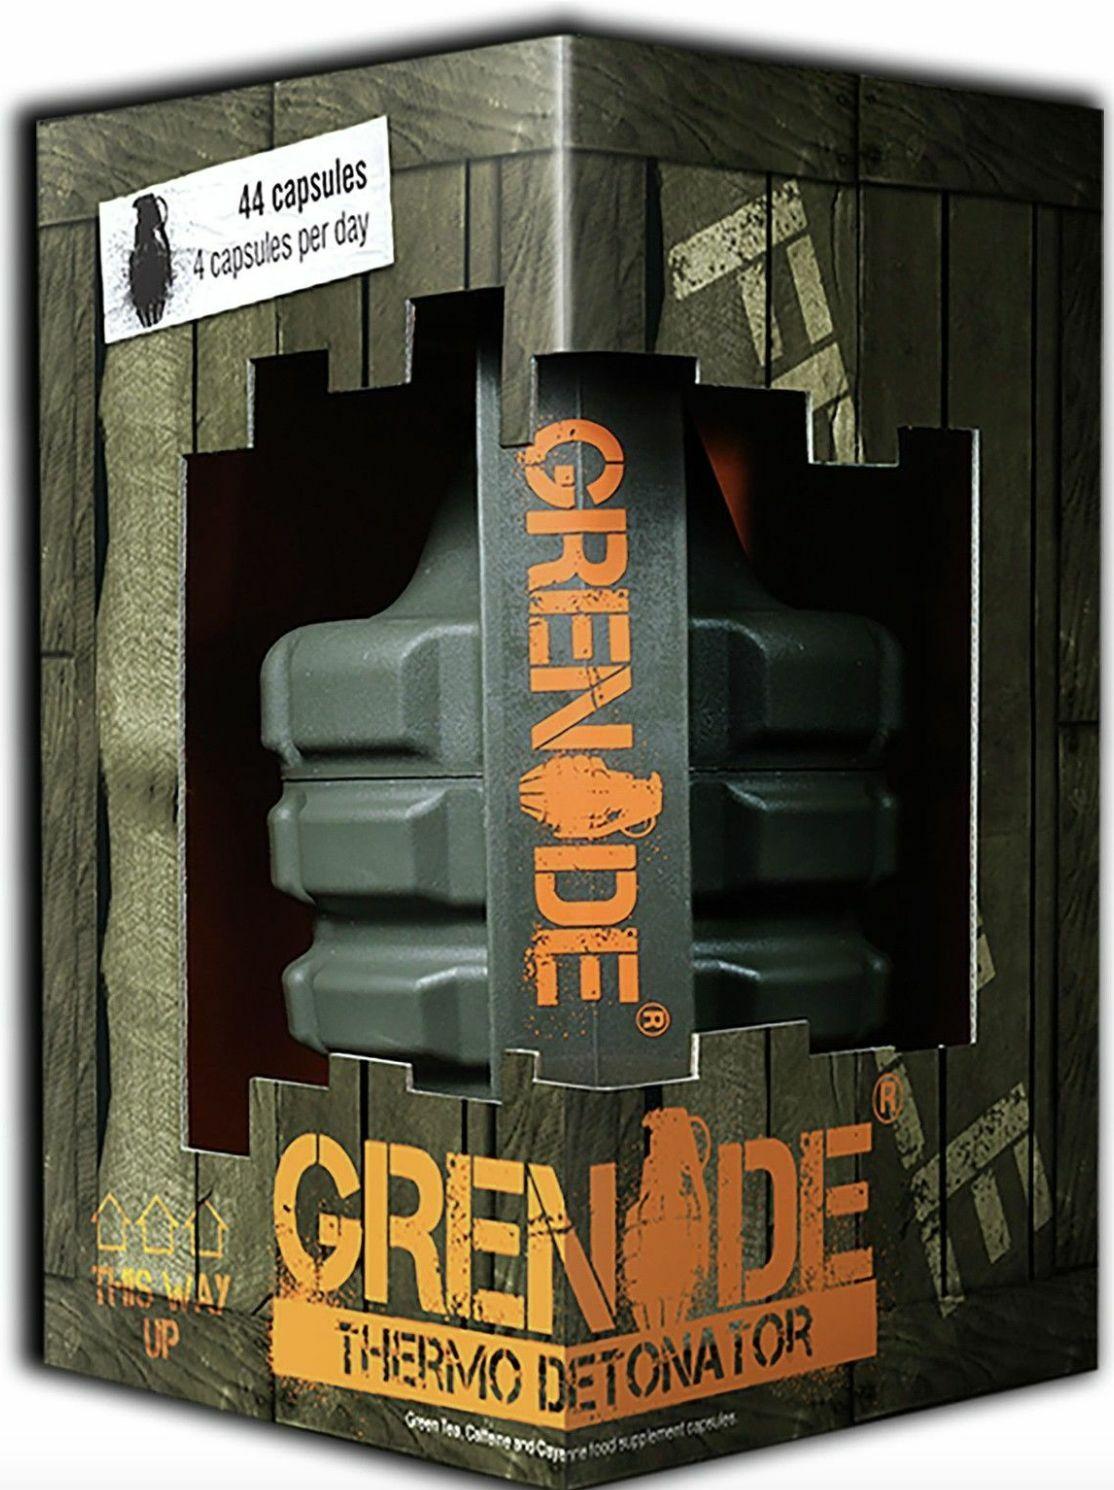 GRENADE thermo detonator 44/100/ caps weight loss fat burner VERY  FAST DELIVERY